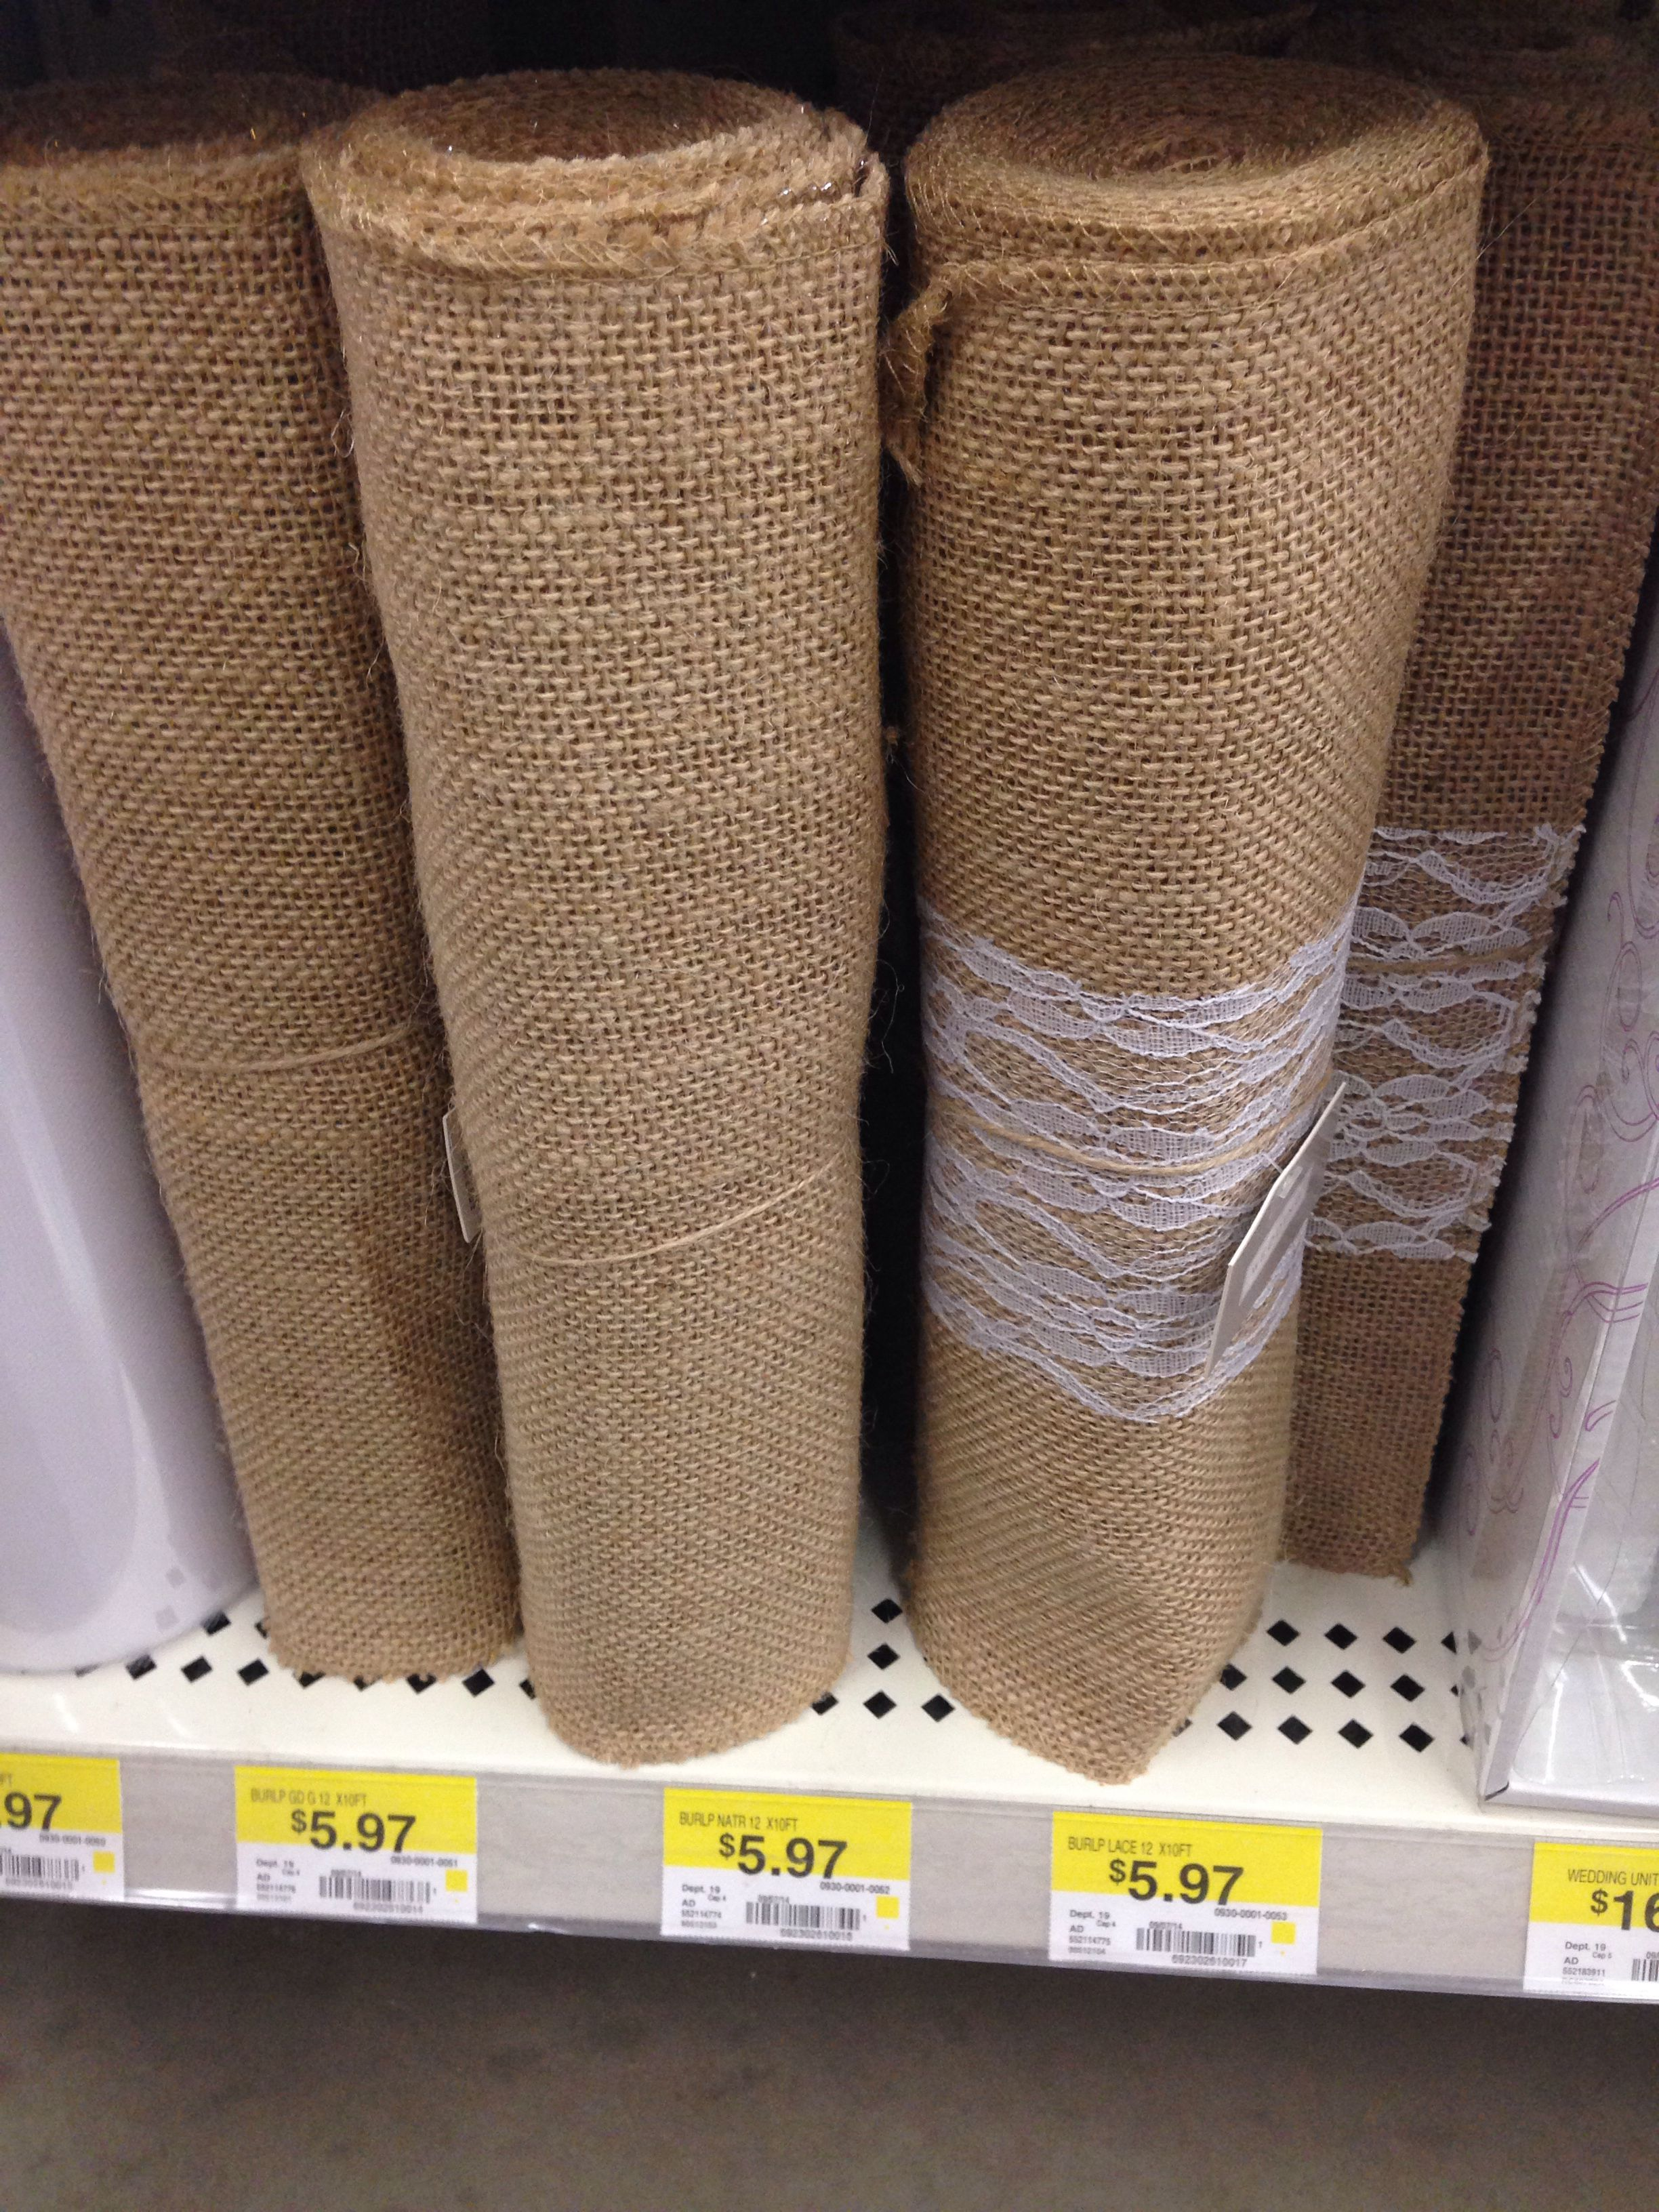 At Walmart, in the wedding accessories section. Burlap table runners (10ft)  w/ and w/o lace for ~$6.00